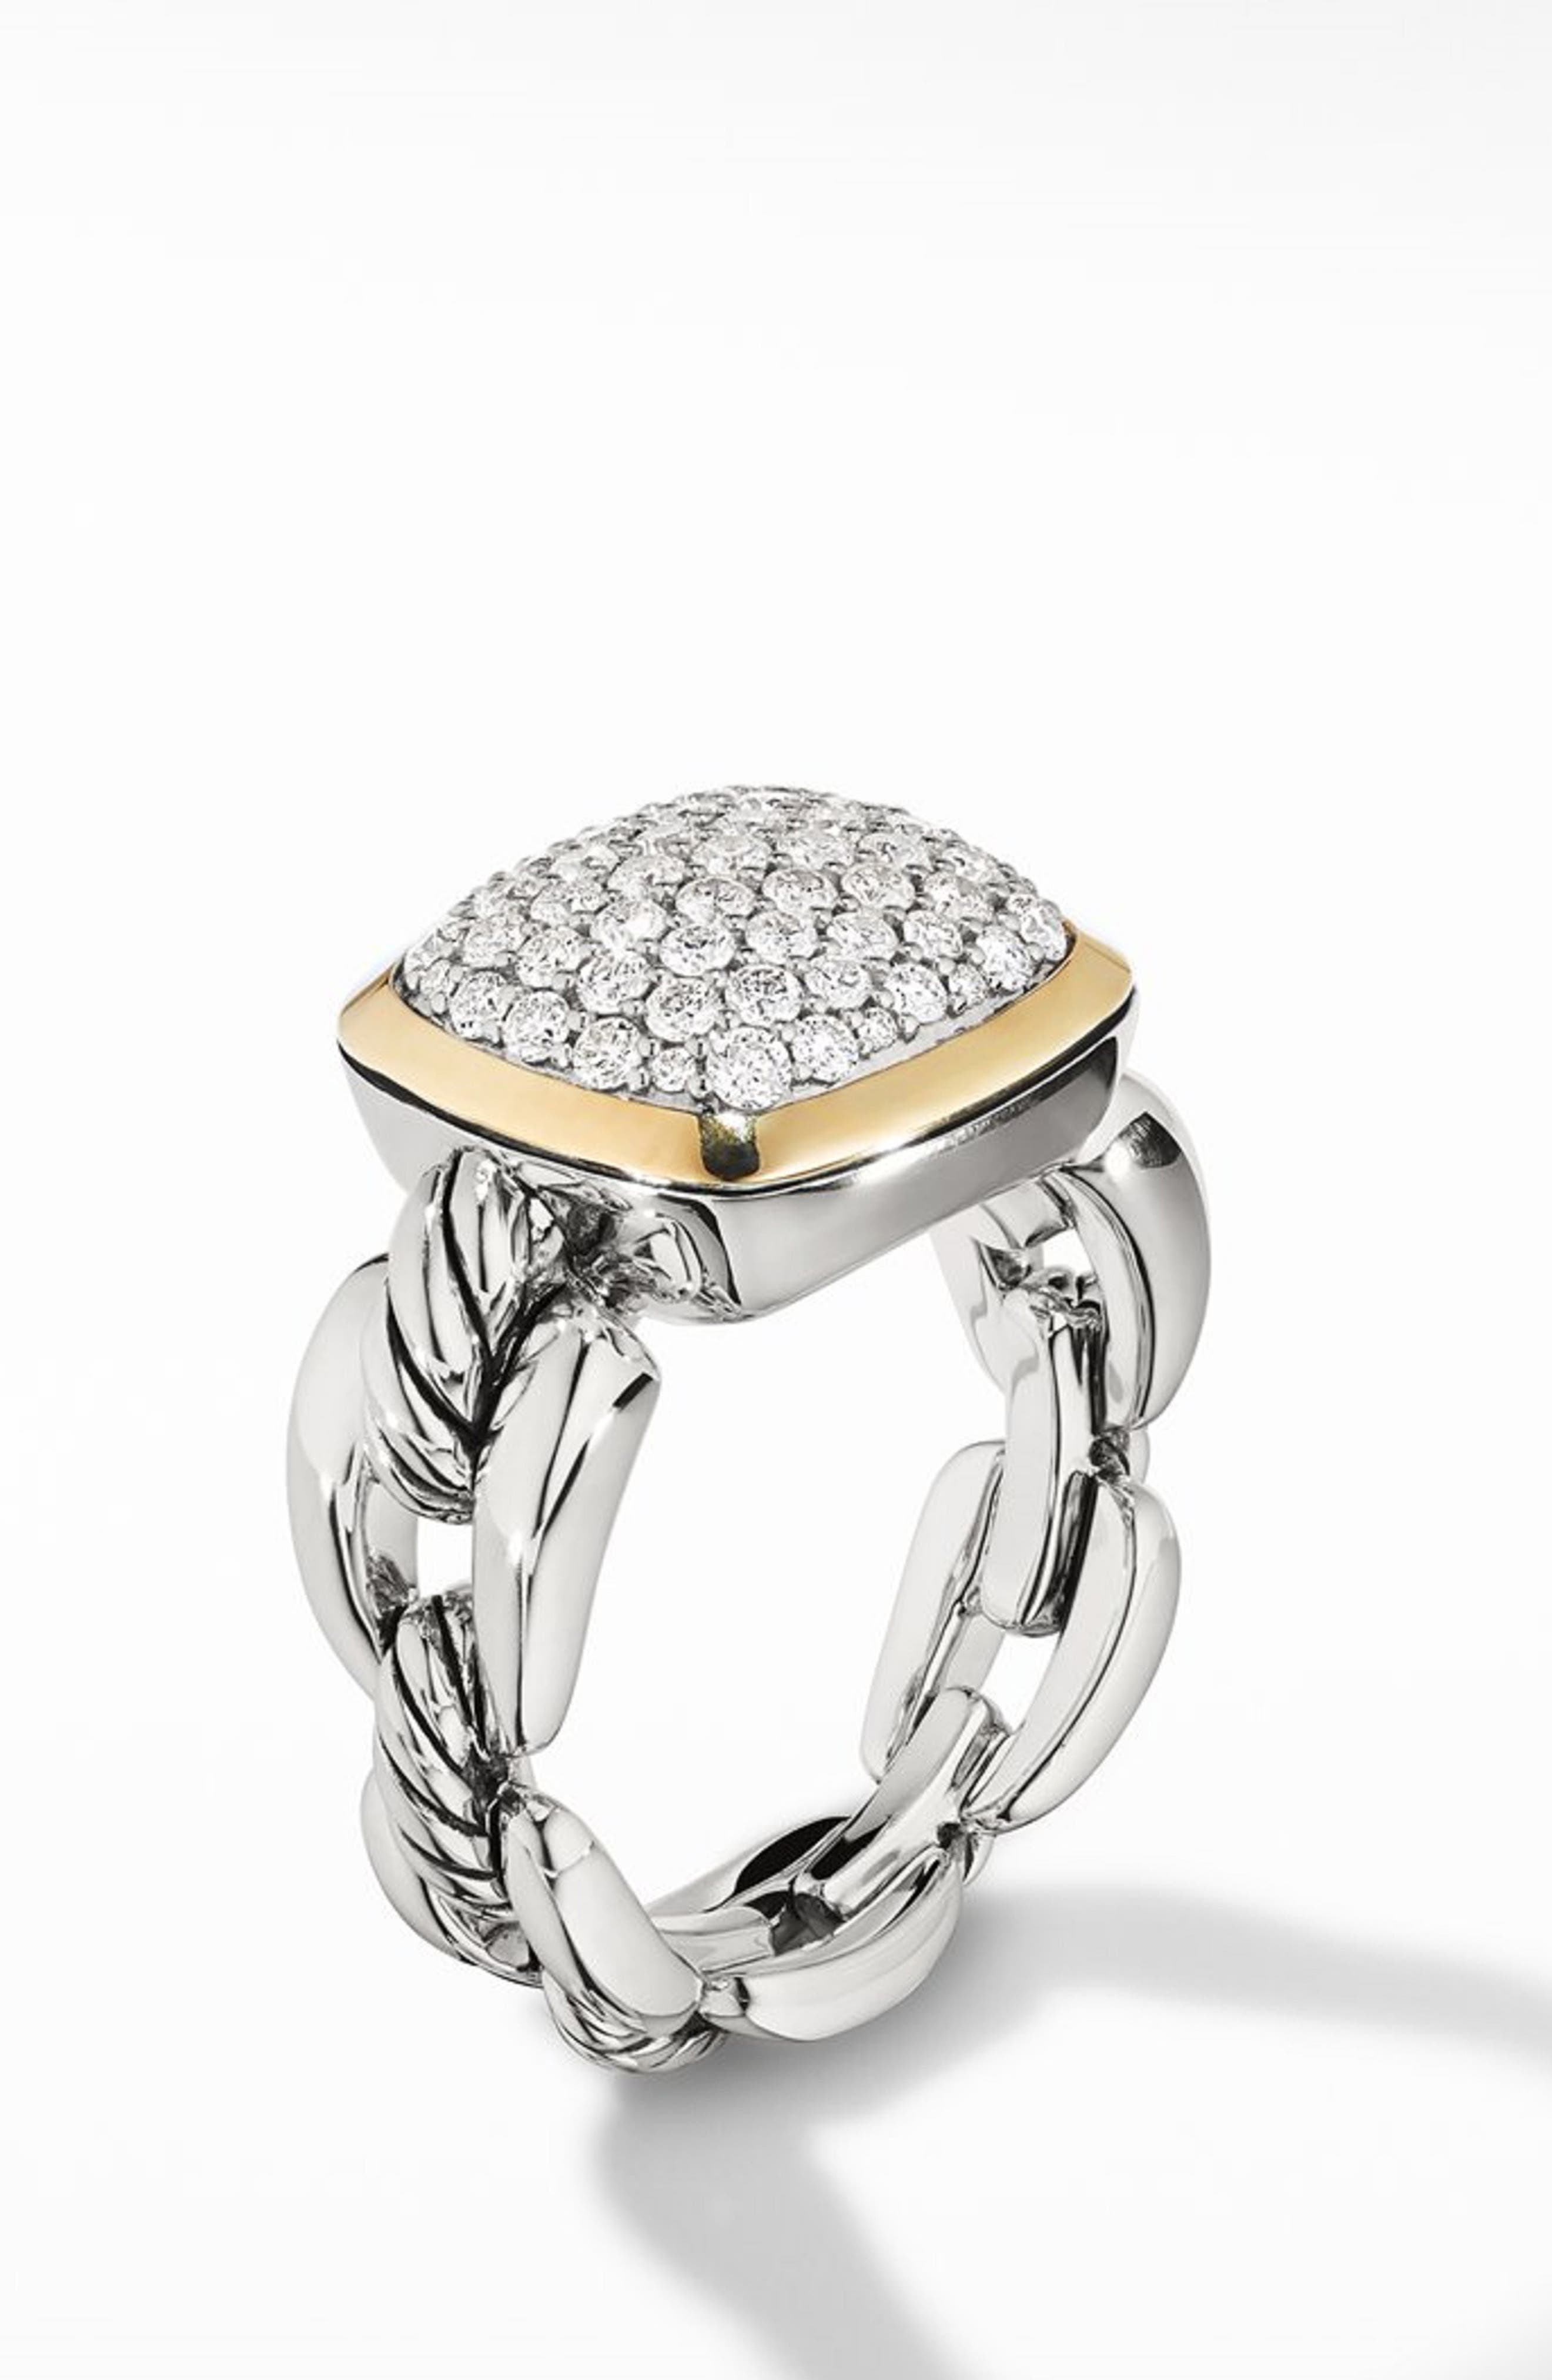 Wellesley Link Statement Ring with 18k Gold & Diamonds,                             Main thumbnail 1, color,                             SILVER/ DIAMOND